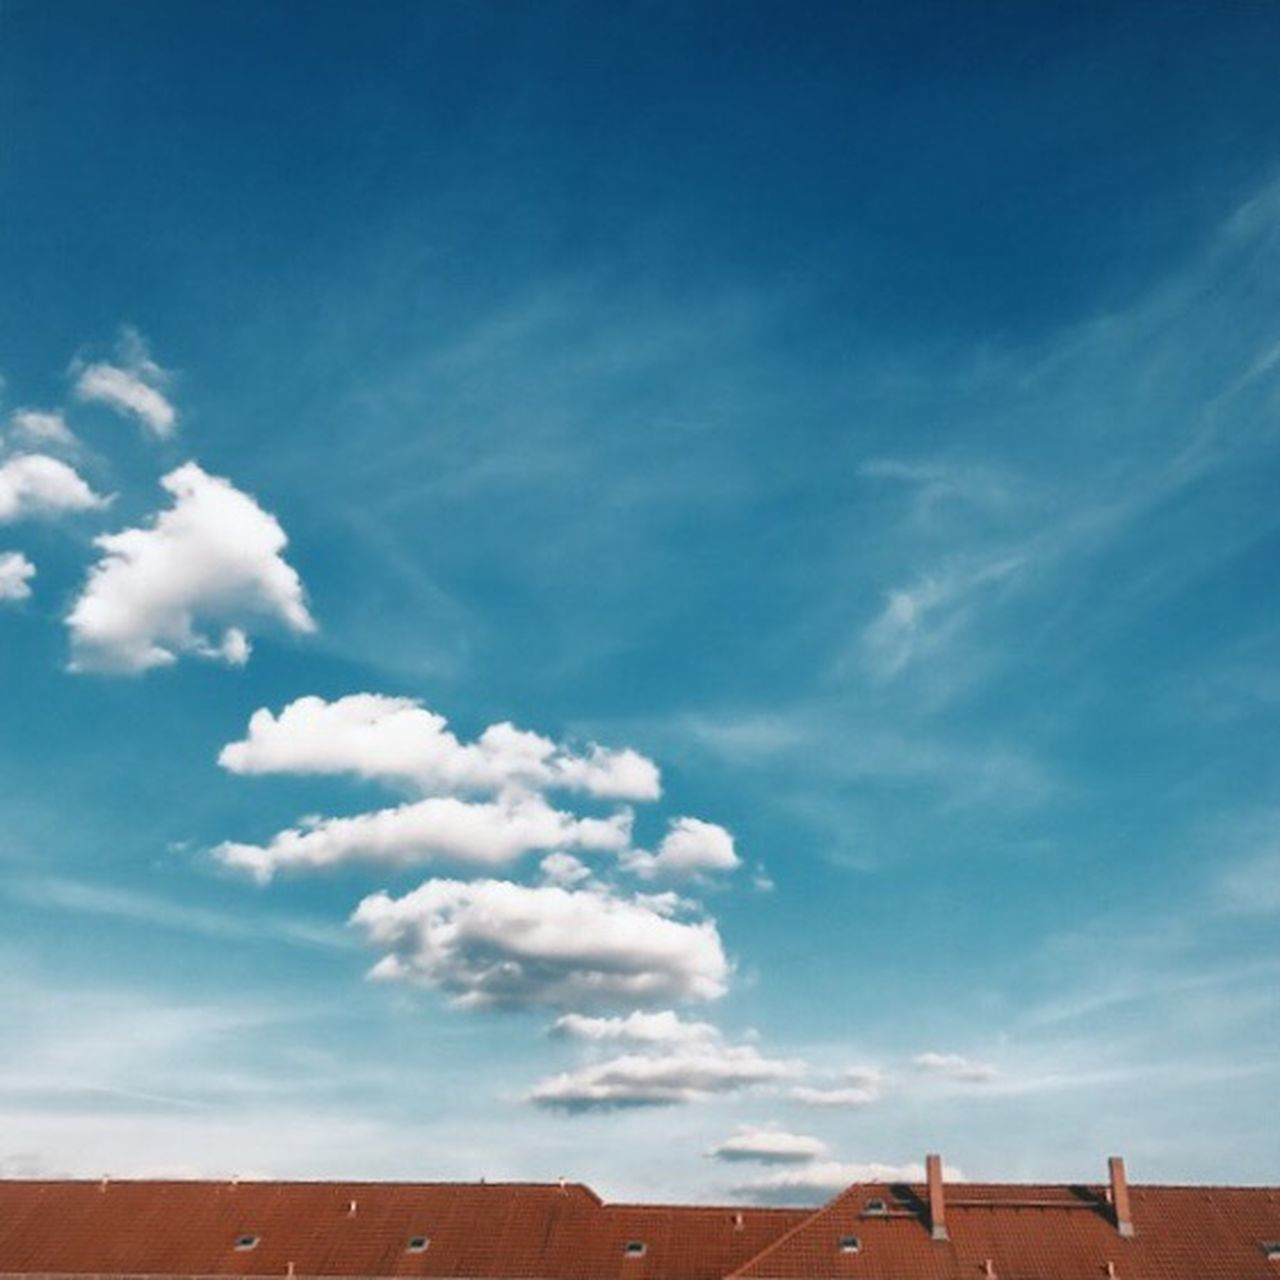 cloud - sky, sky, no people, blue, nature, backgrounds, day, scenics, outdoors, beauty in nature